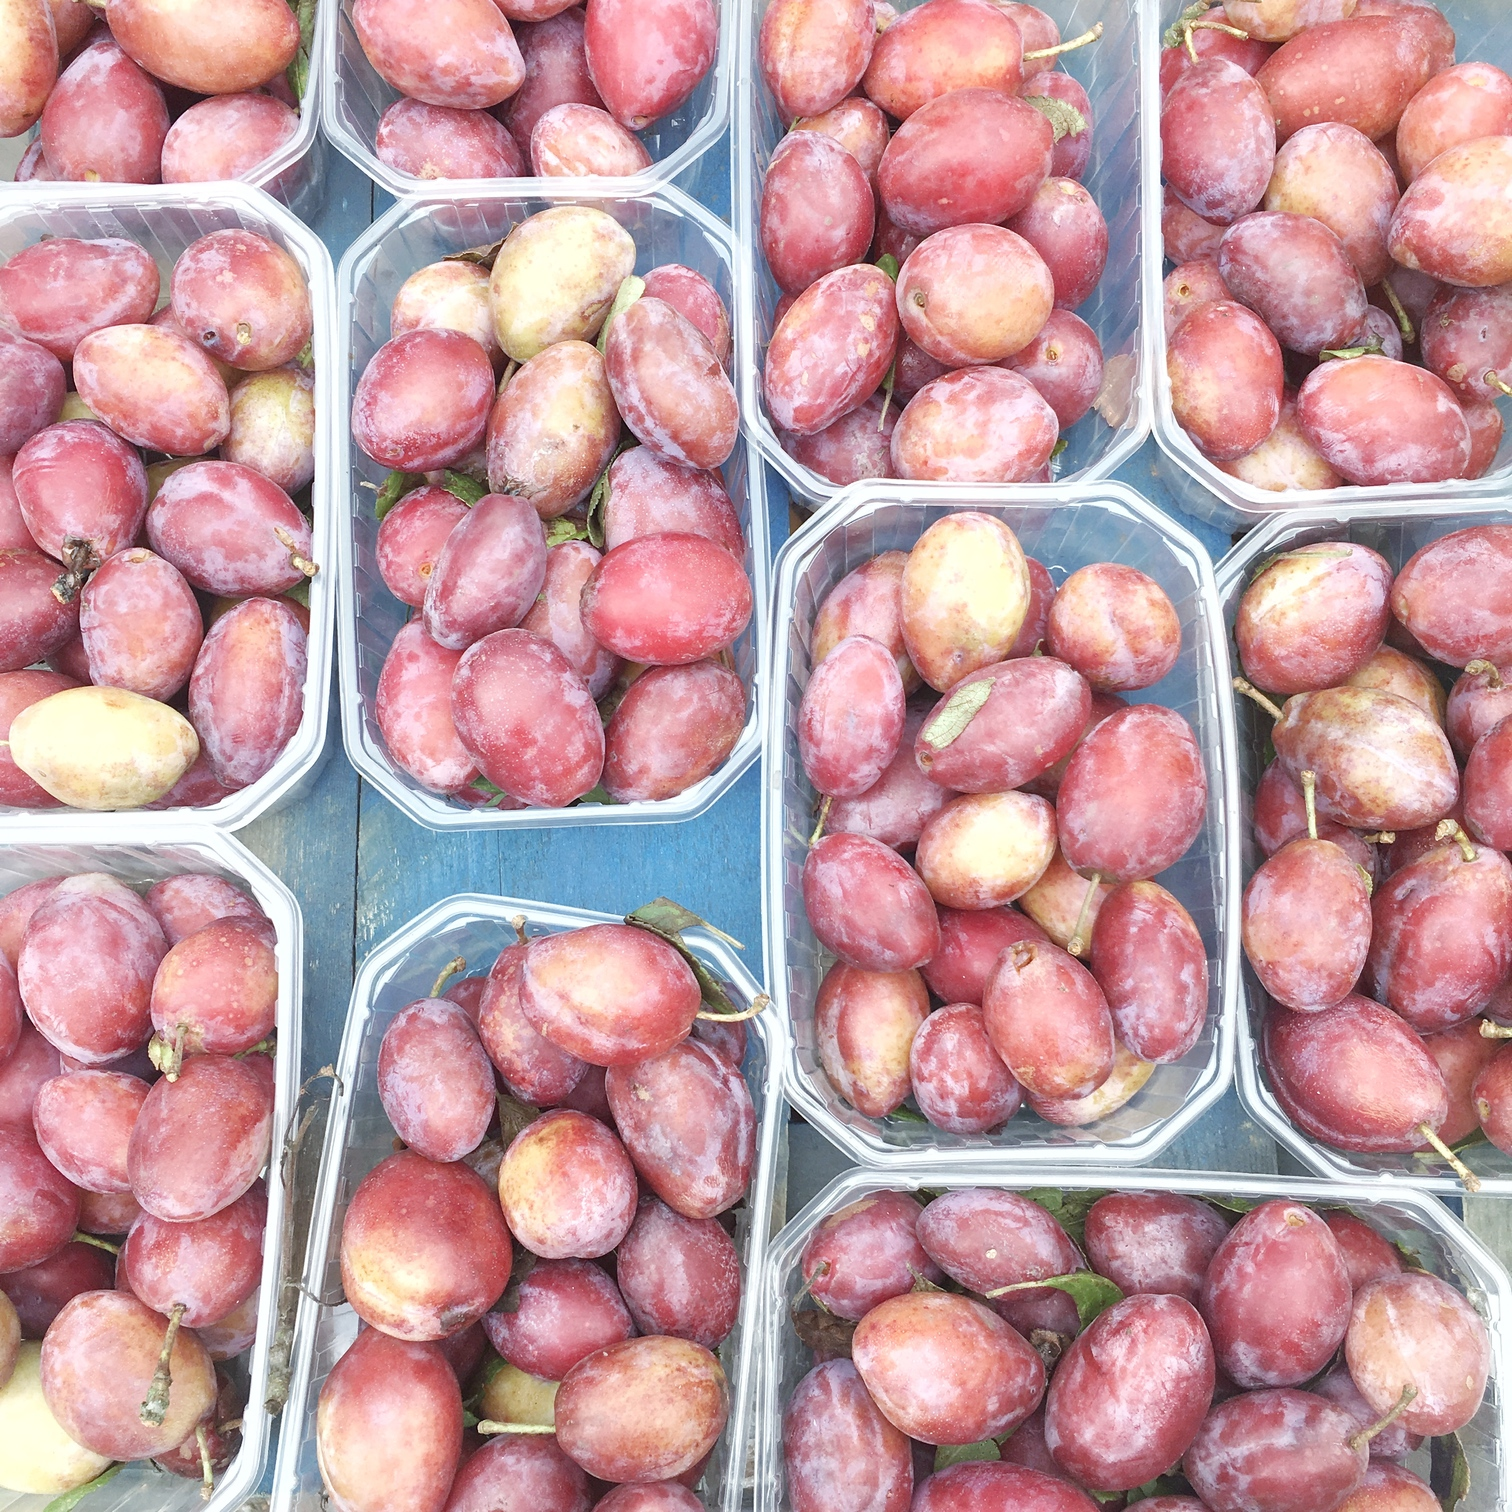 Punnets of plums at Victoria Park Market, London